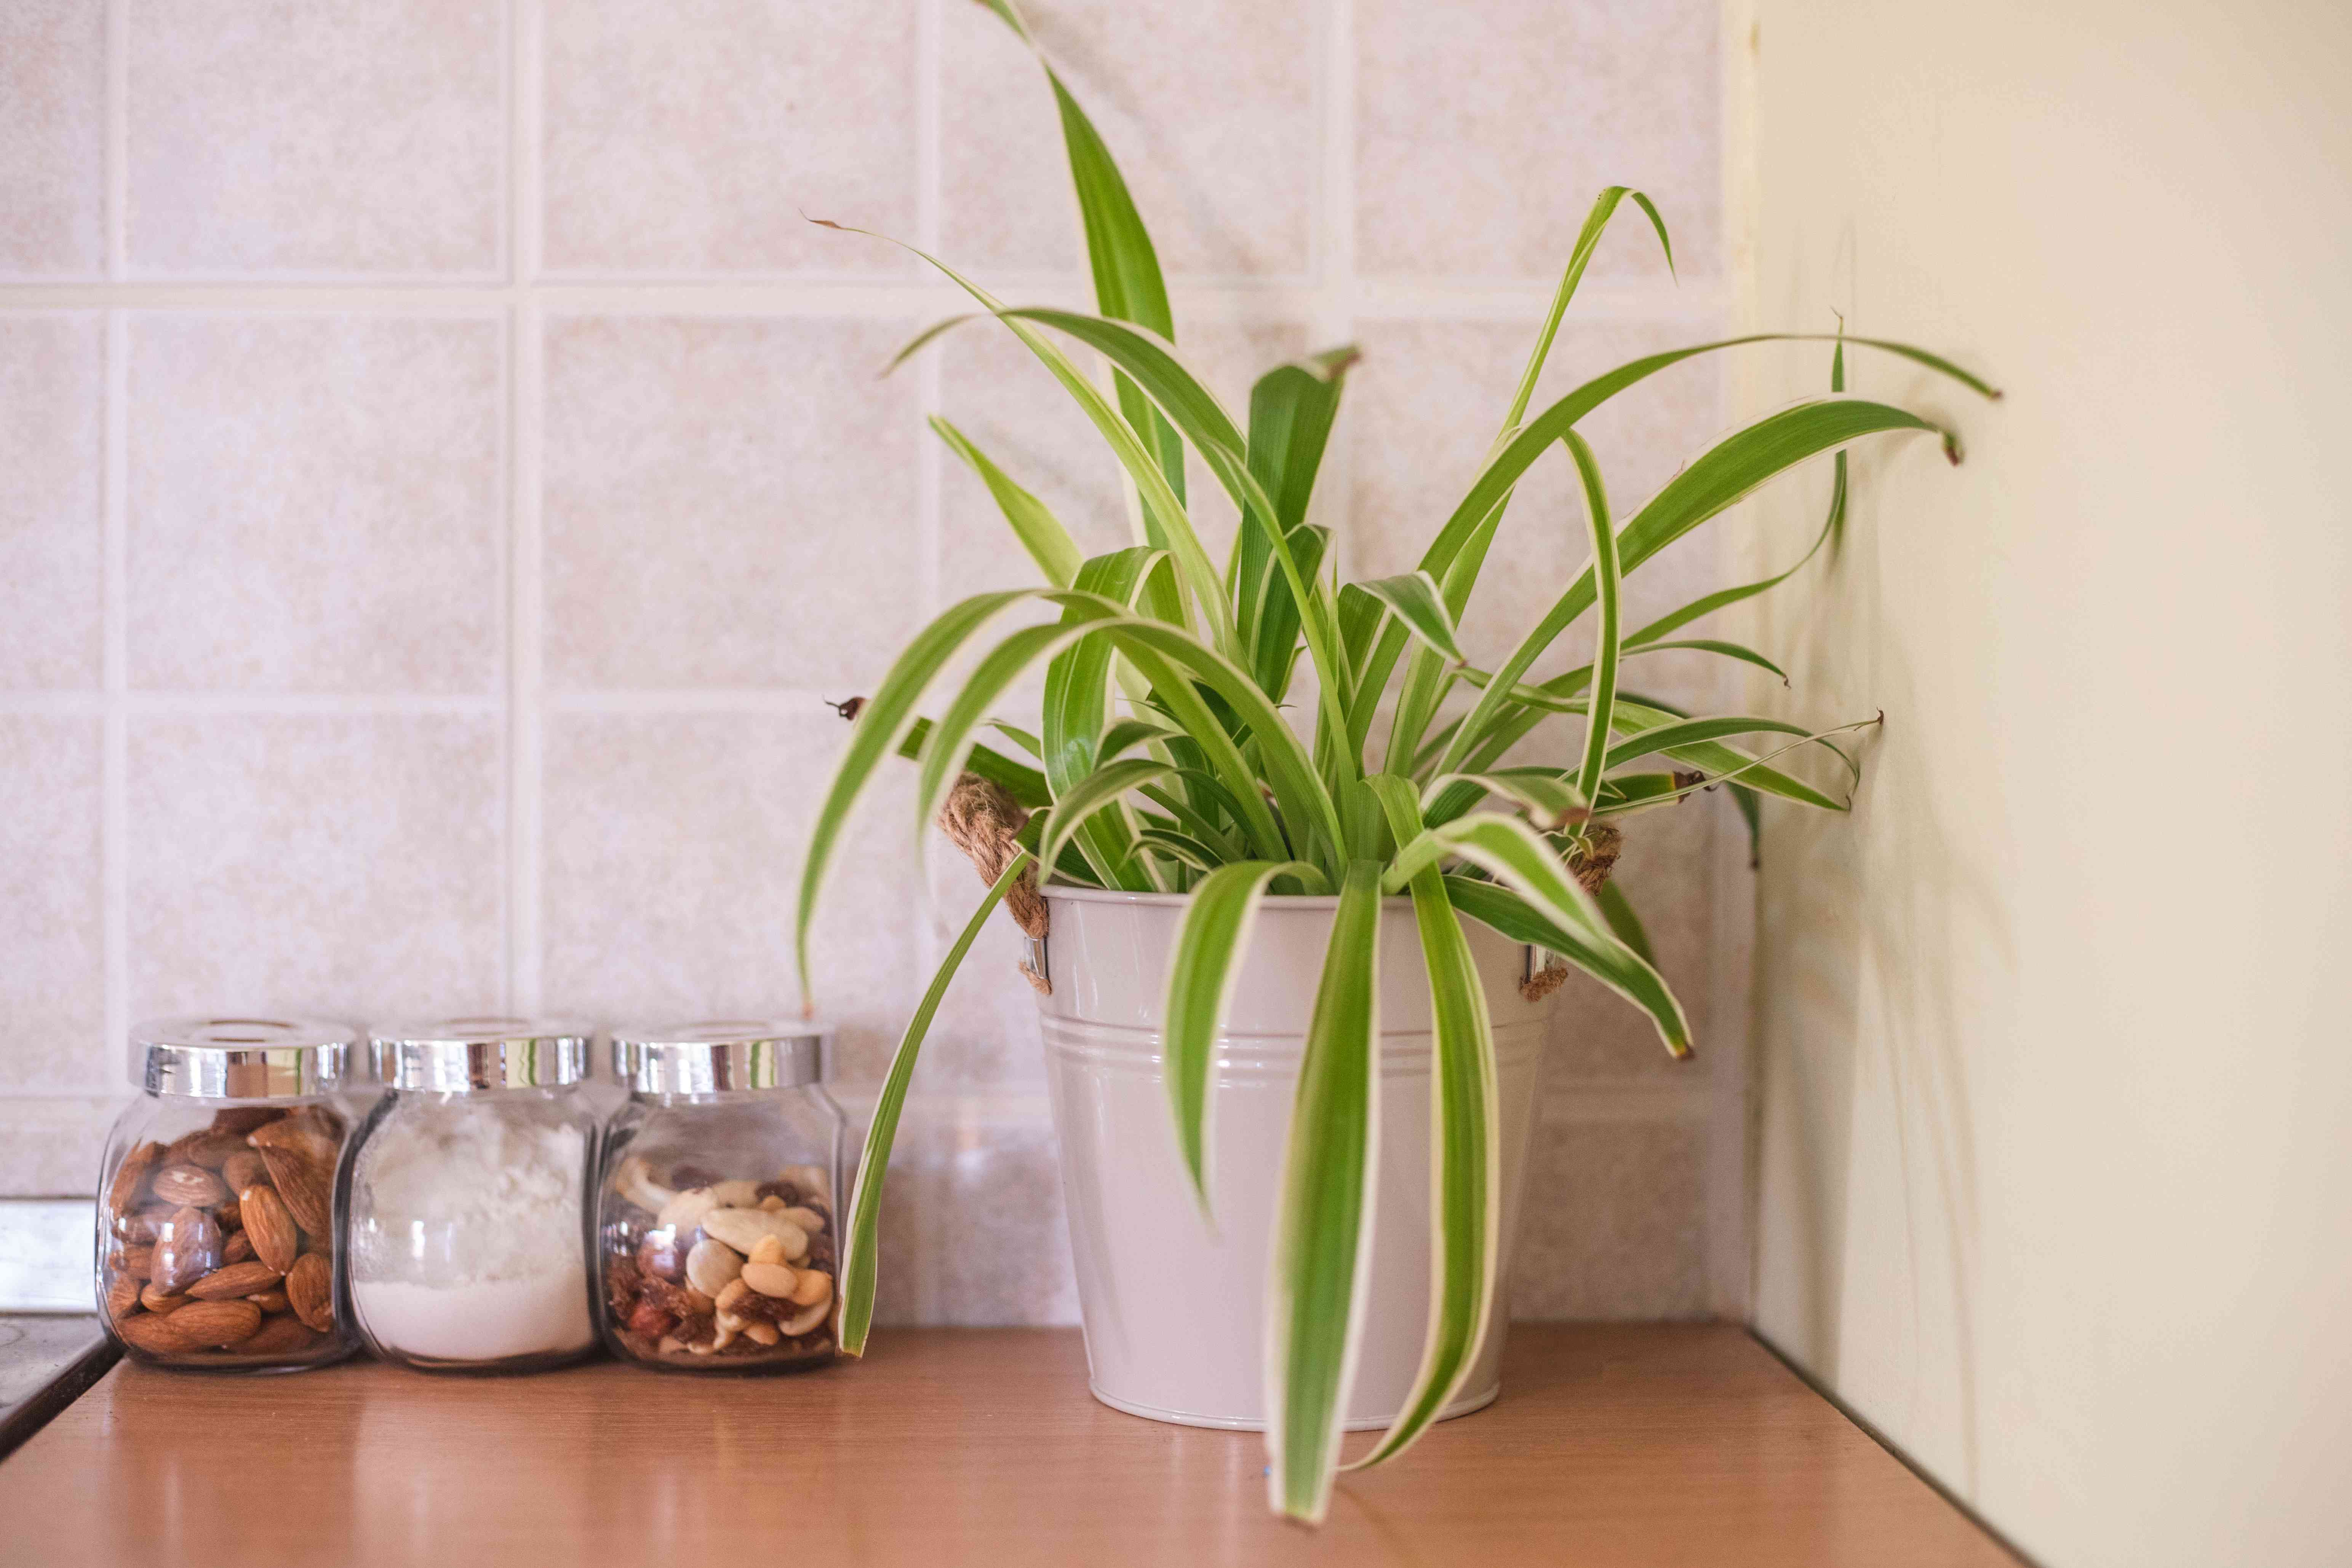 spider plant in metal pot sits in kitchen next to glass jars of food